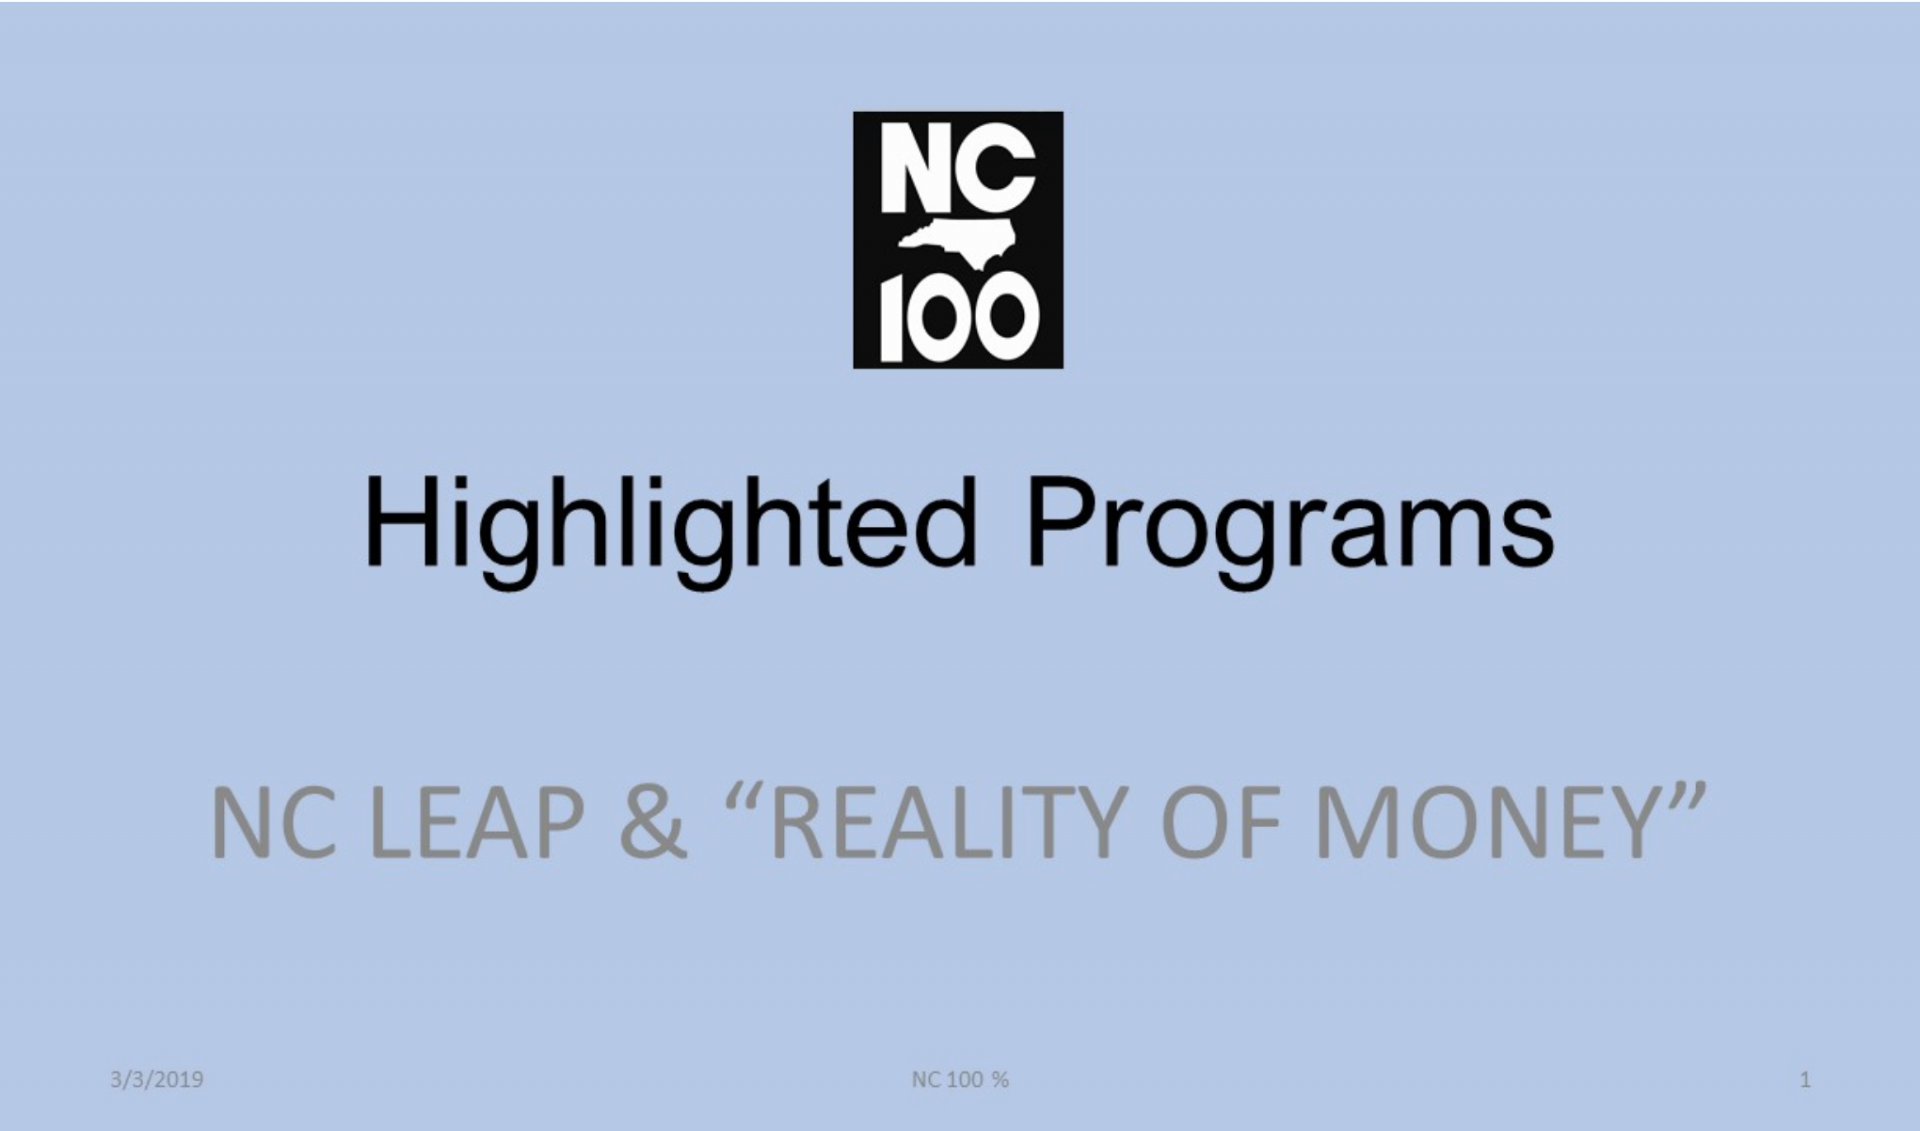 NC 100 highlighted programs